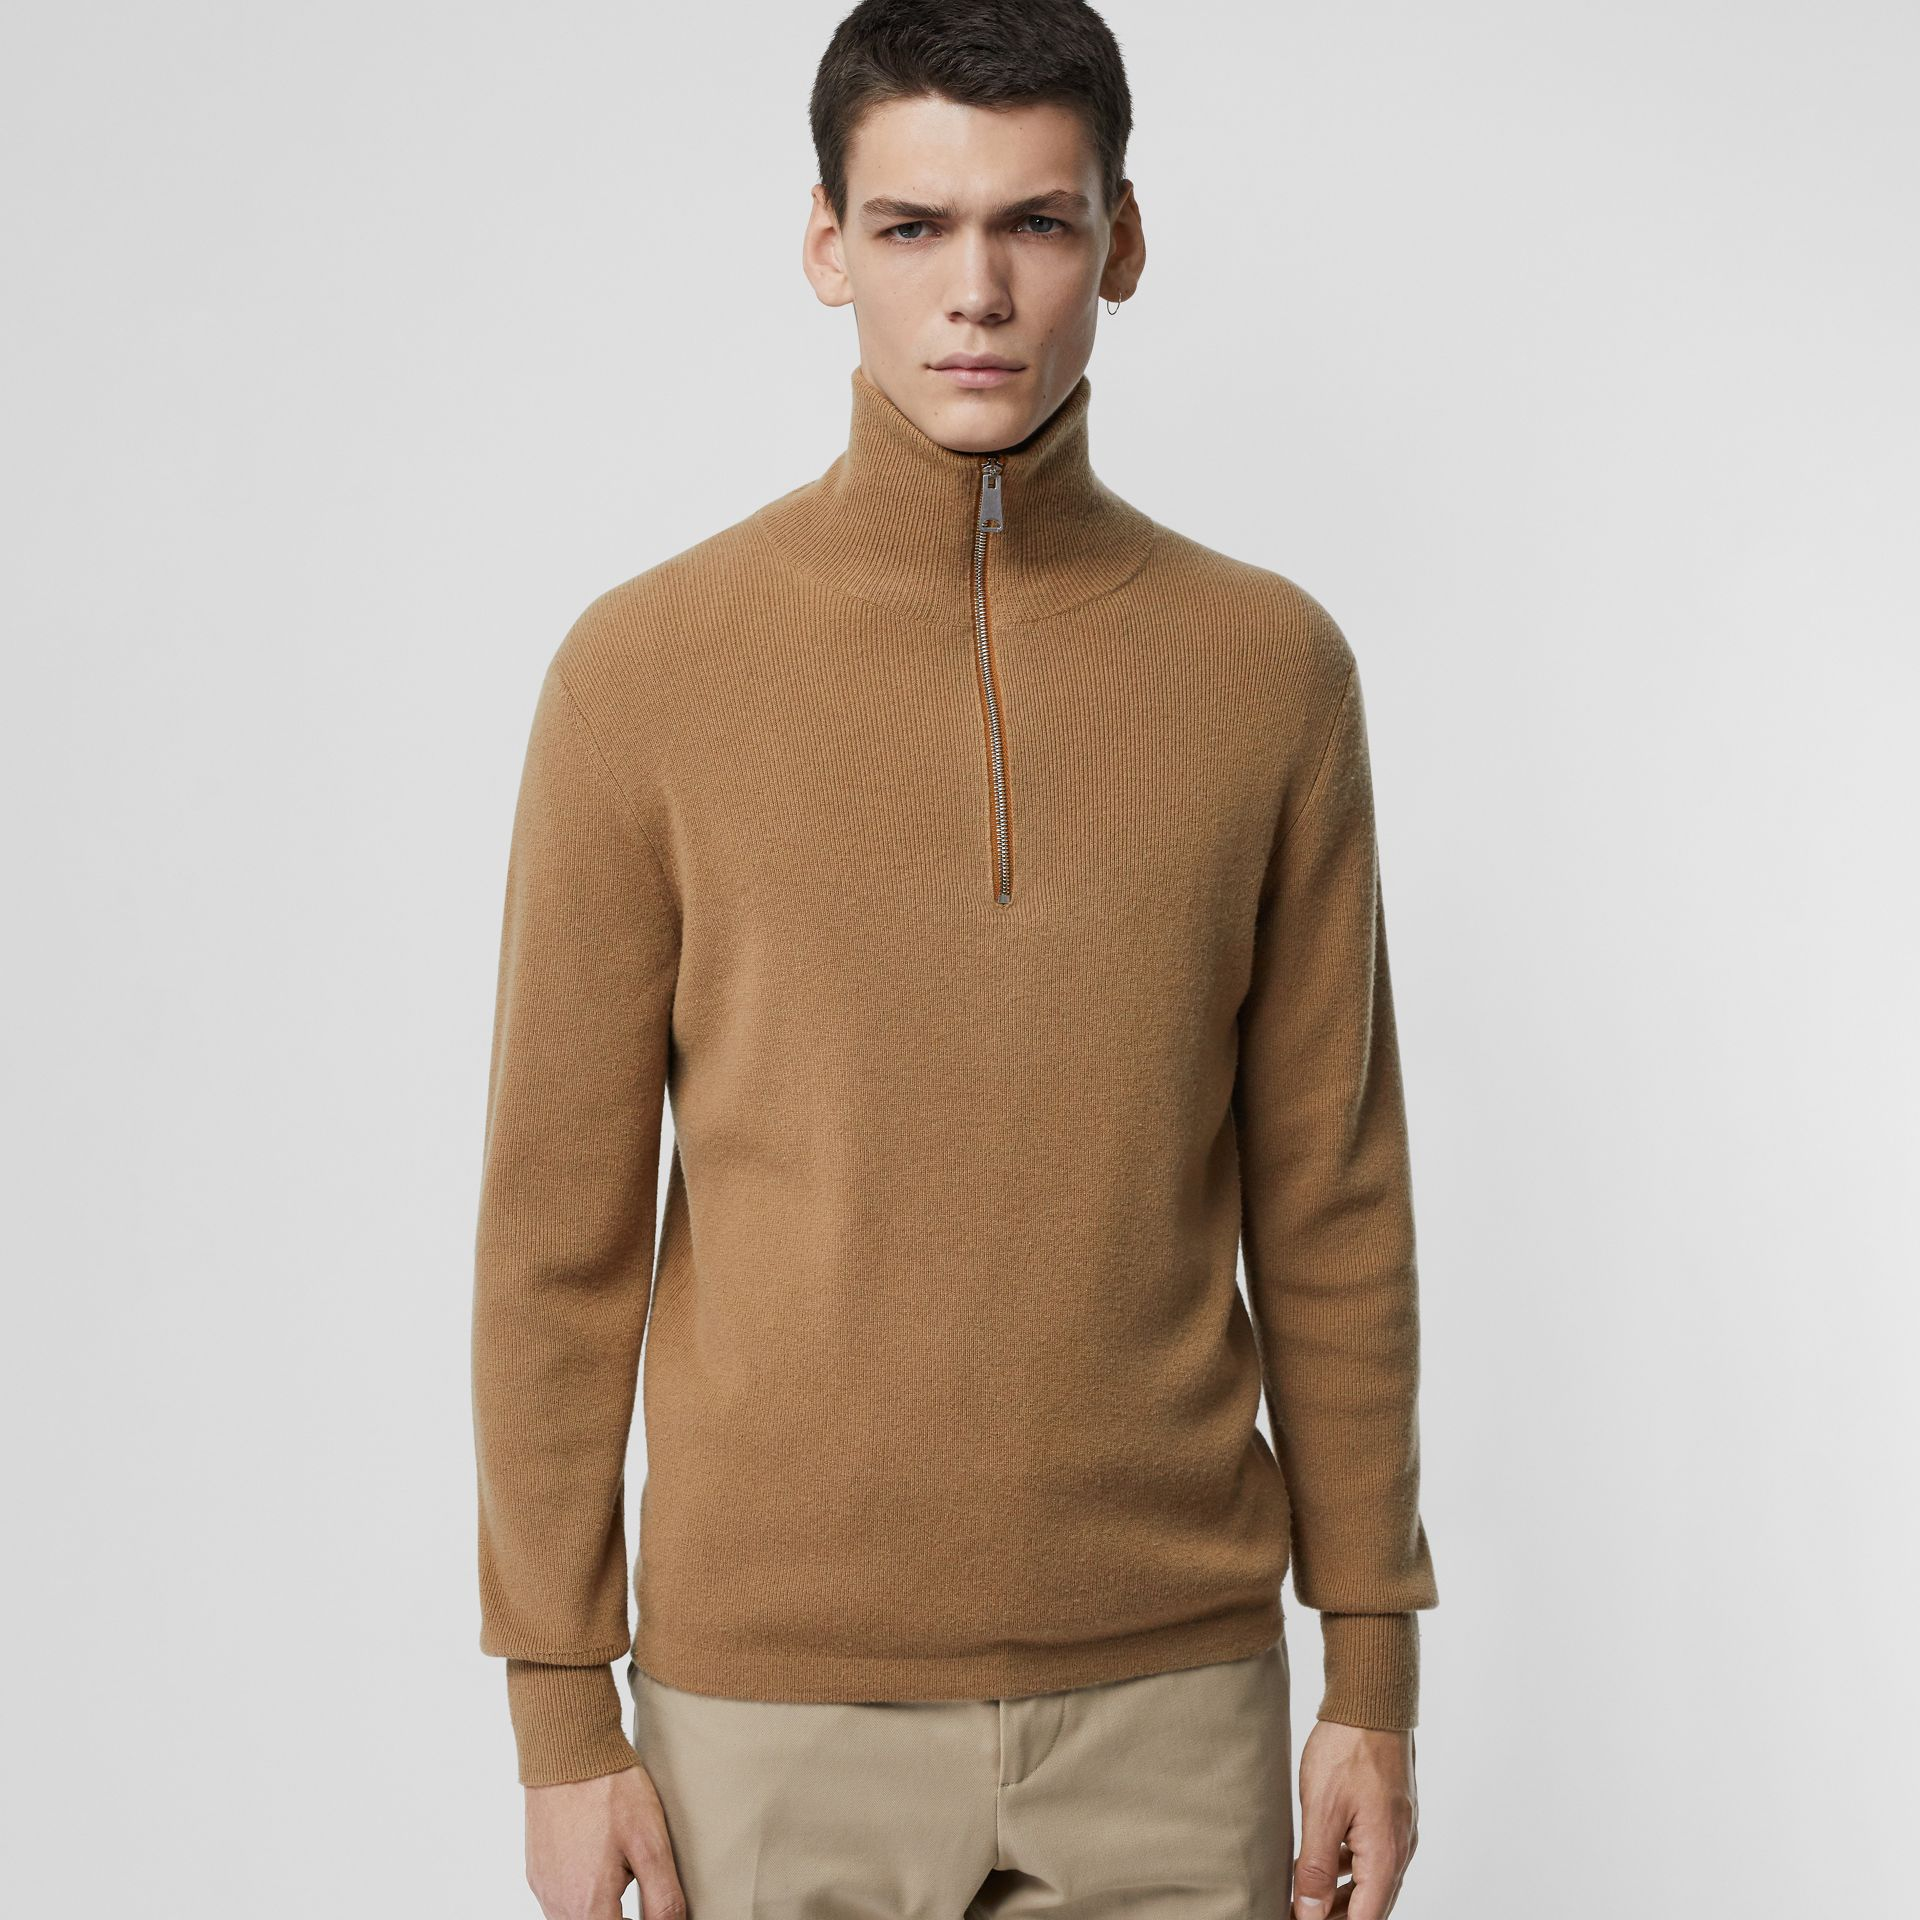 Rib Knit Cashmere Half-zip Sweater in Camel - Men | Burberry United Kingdom - gallery image 0